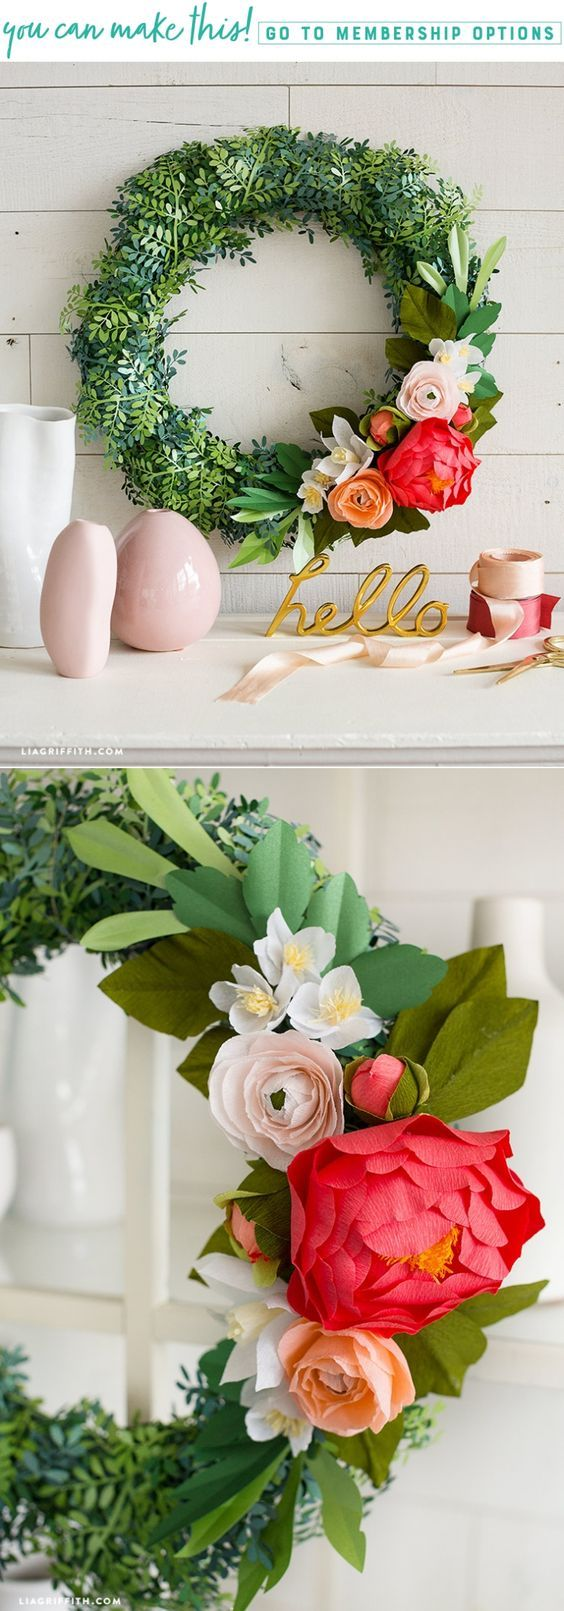 Create a bright and beautiful boxwood wreath for spring! - Lia Griffith - www.liagriffith.com #paper #paperart #paperlove #wreath #wreaths #diydecor #diyhome #spring #crepepaper #crepepaperrevival #crepepaperflowers #madewithlia